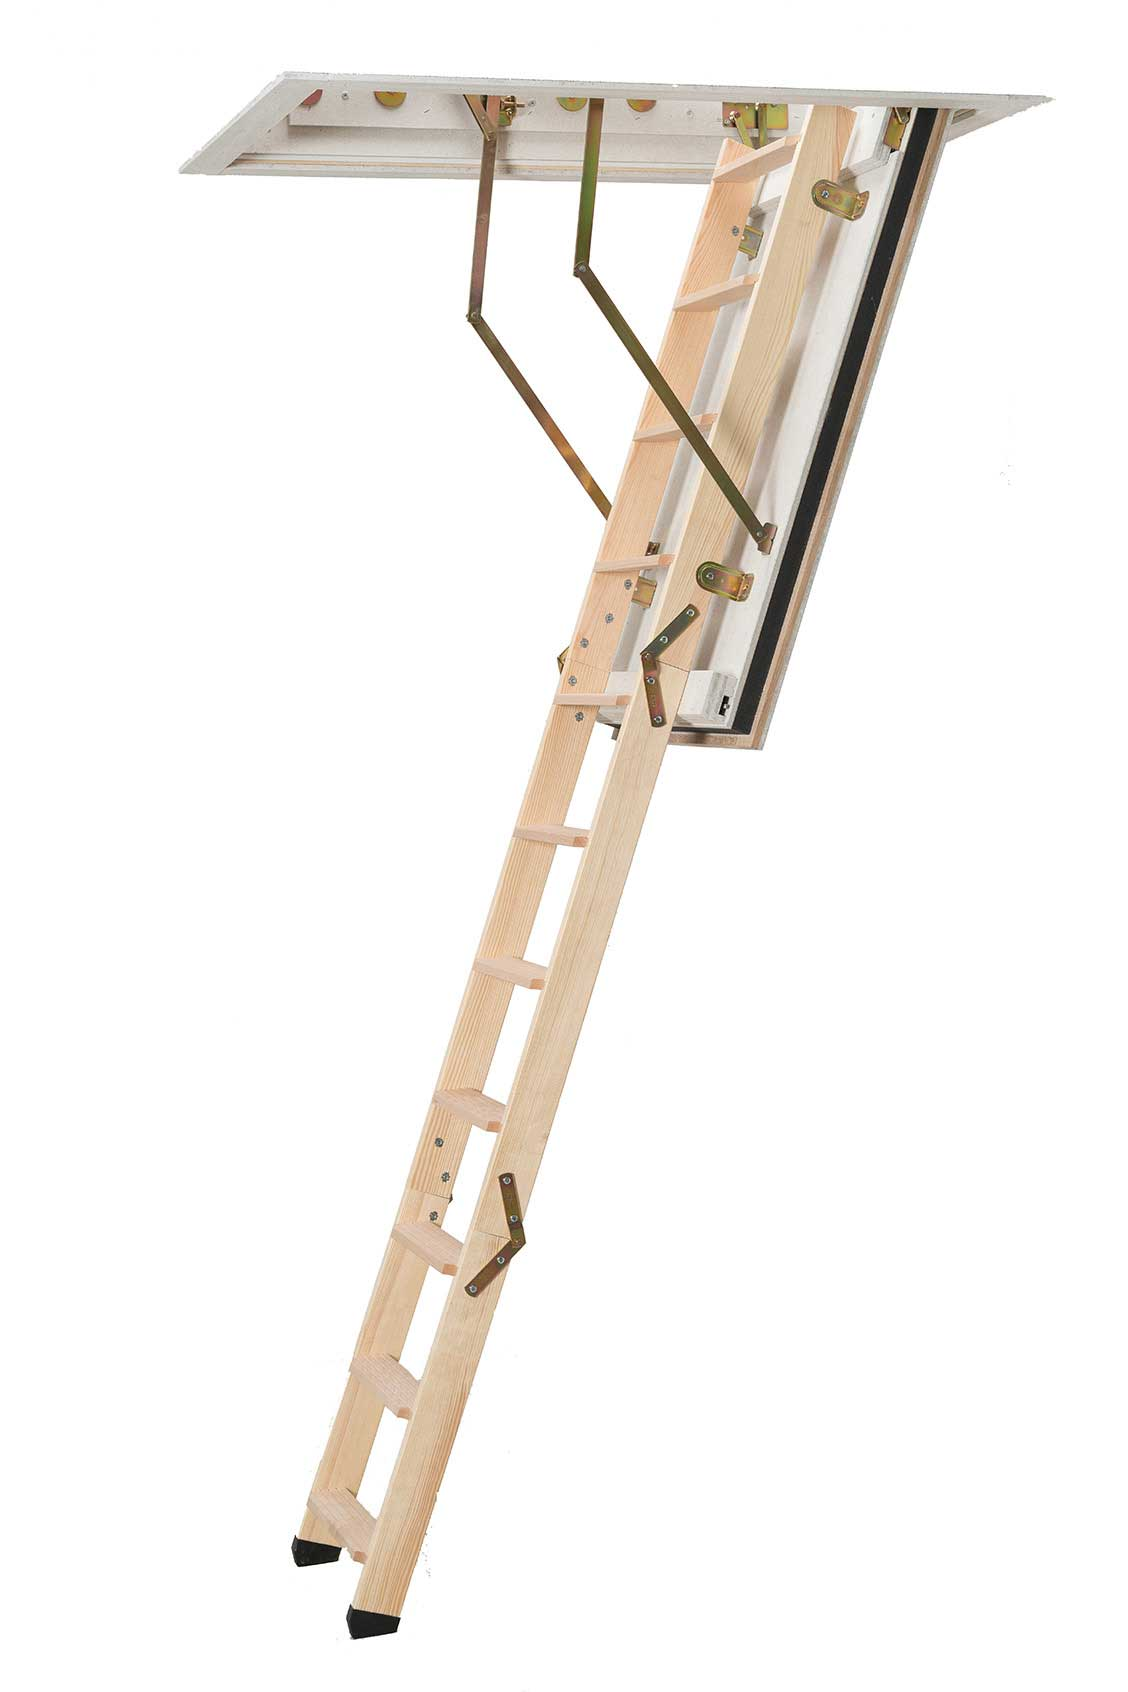 fire resistant loft ladder bd90 made to measure